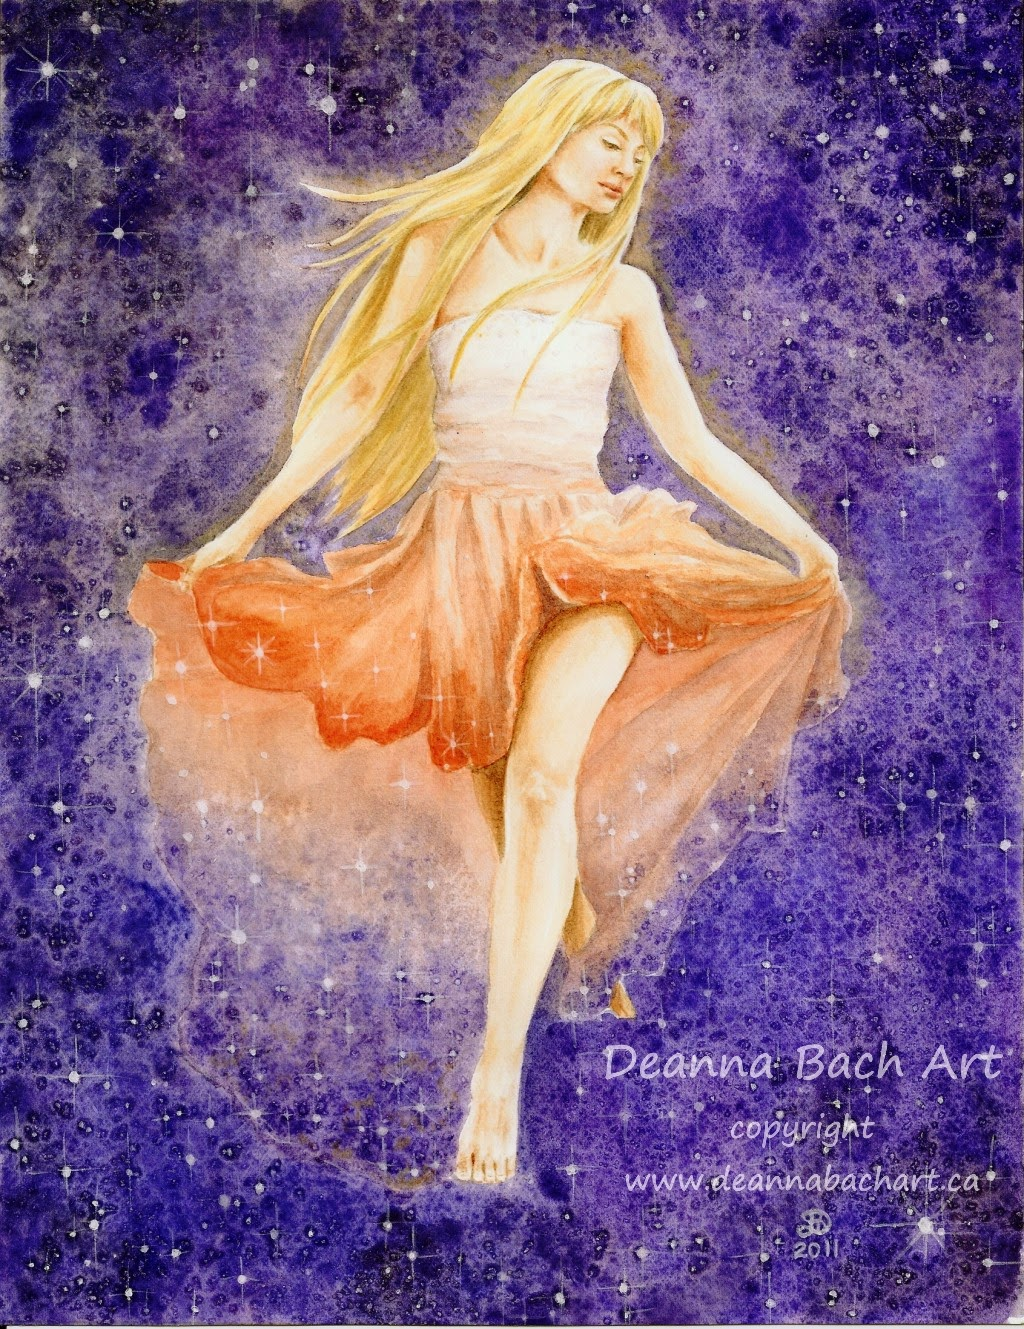 Stardancer by Enchanted Visions Artist, Deanna Bach